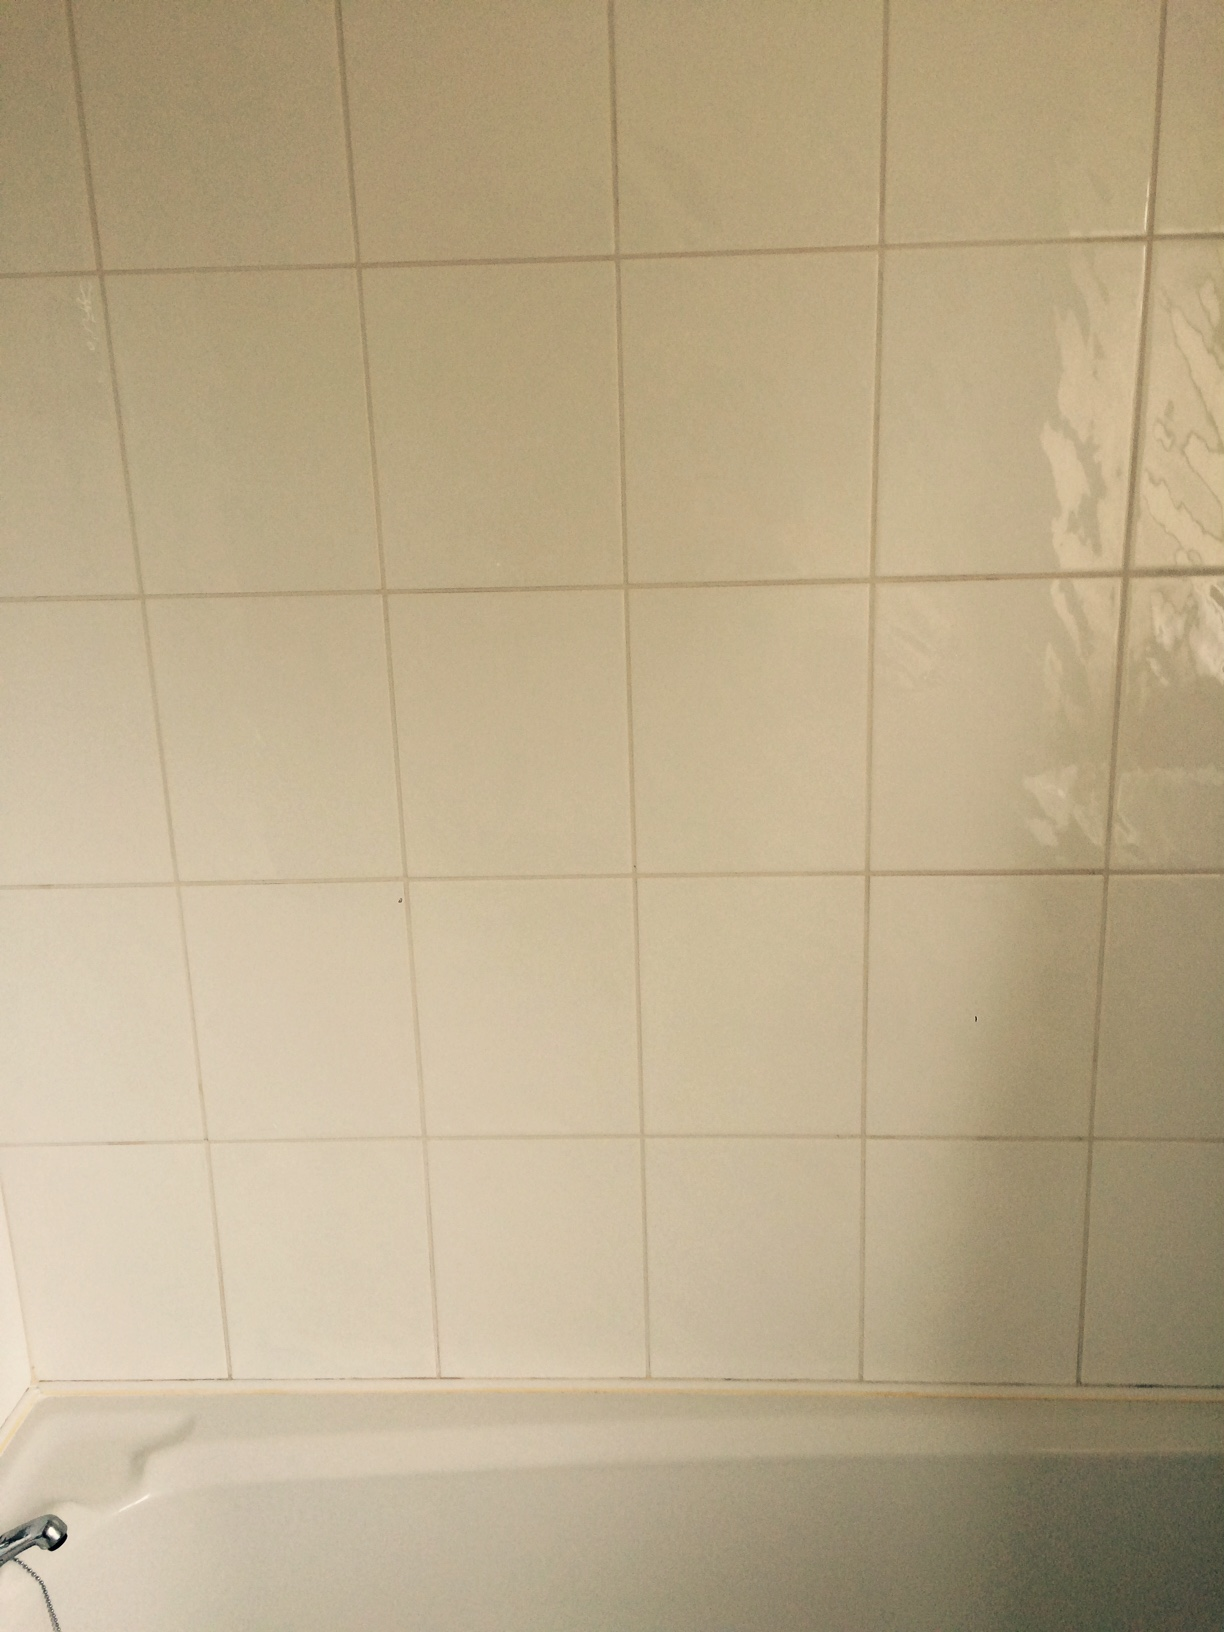 Ceramic Bathroom Tile and Grout Cleaned with Mould Away in Galgate